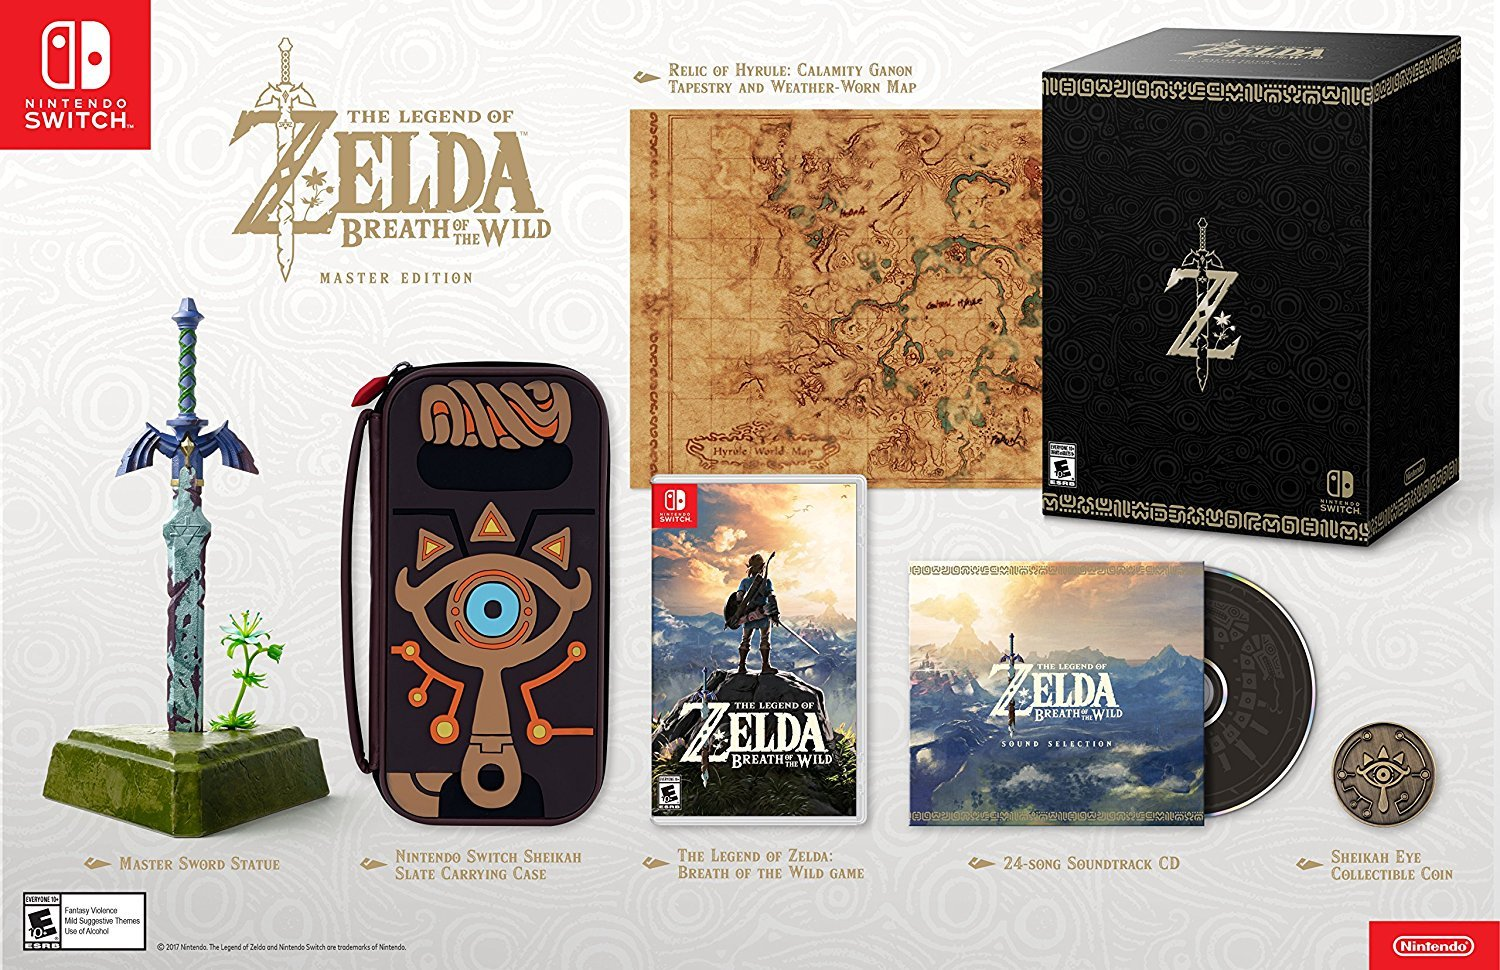 The Legend of Zelda Breath of The Wild Master Edition for Nintendo Switch